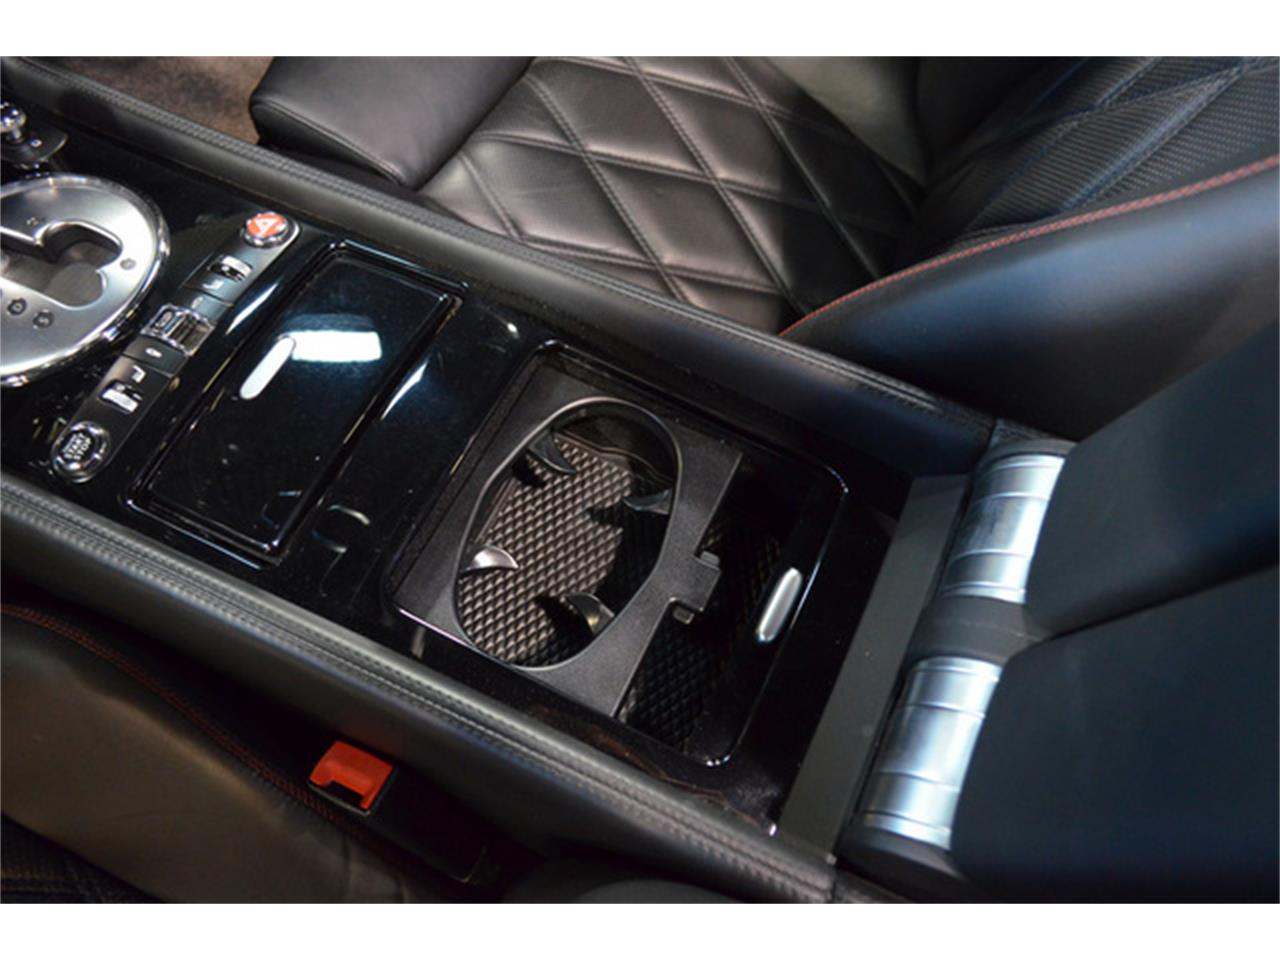 Large Picture of 2009 Continental GTC Mulliner located in New York - $89,500.00 - LDQF